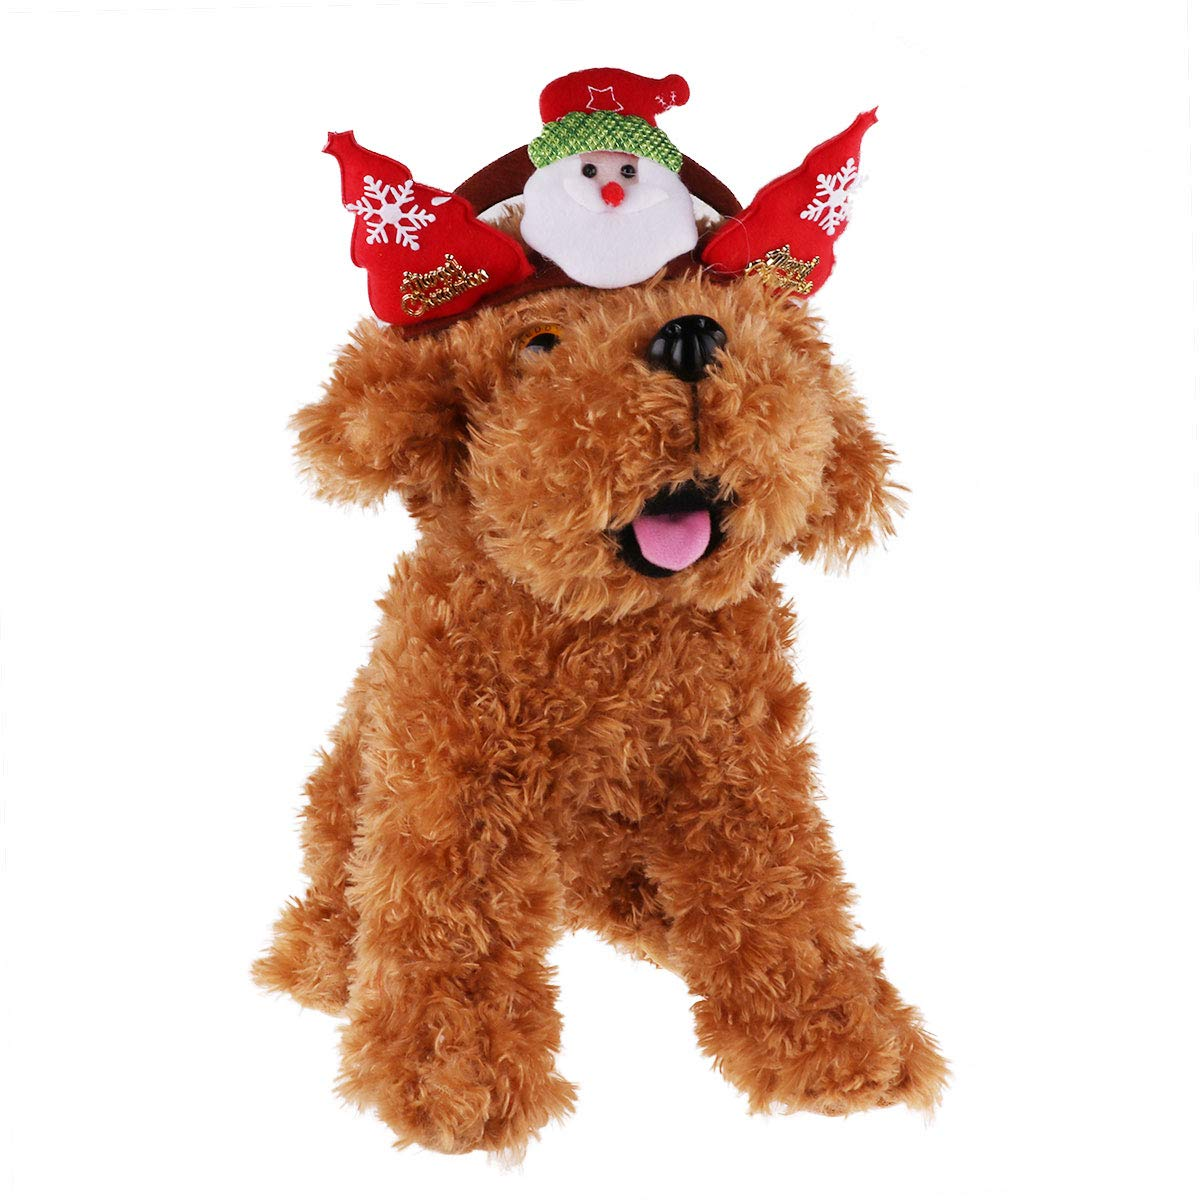 CHICTRY Dog Christmas Headbands Puppy Cat Festive Headdress Hair Accessories for Xmas Holiday Party Pet Costume Supplies Santa M